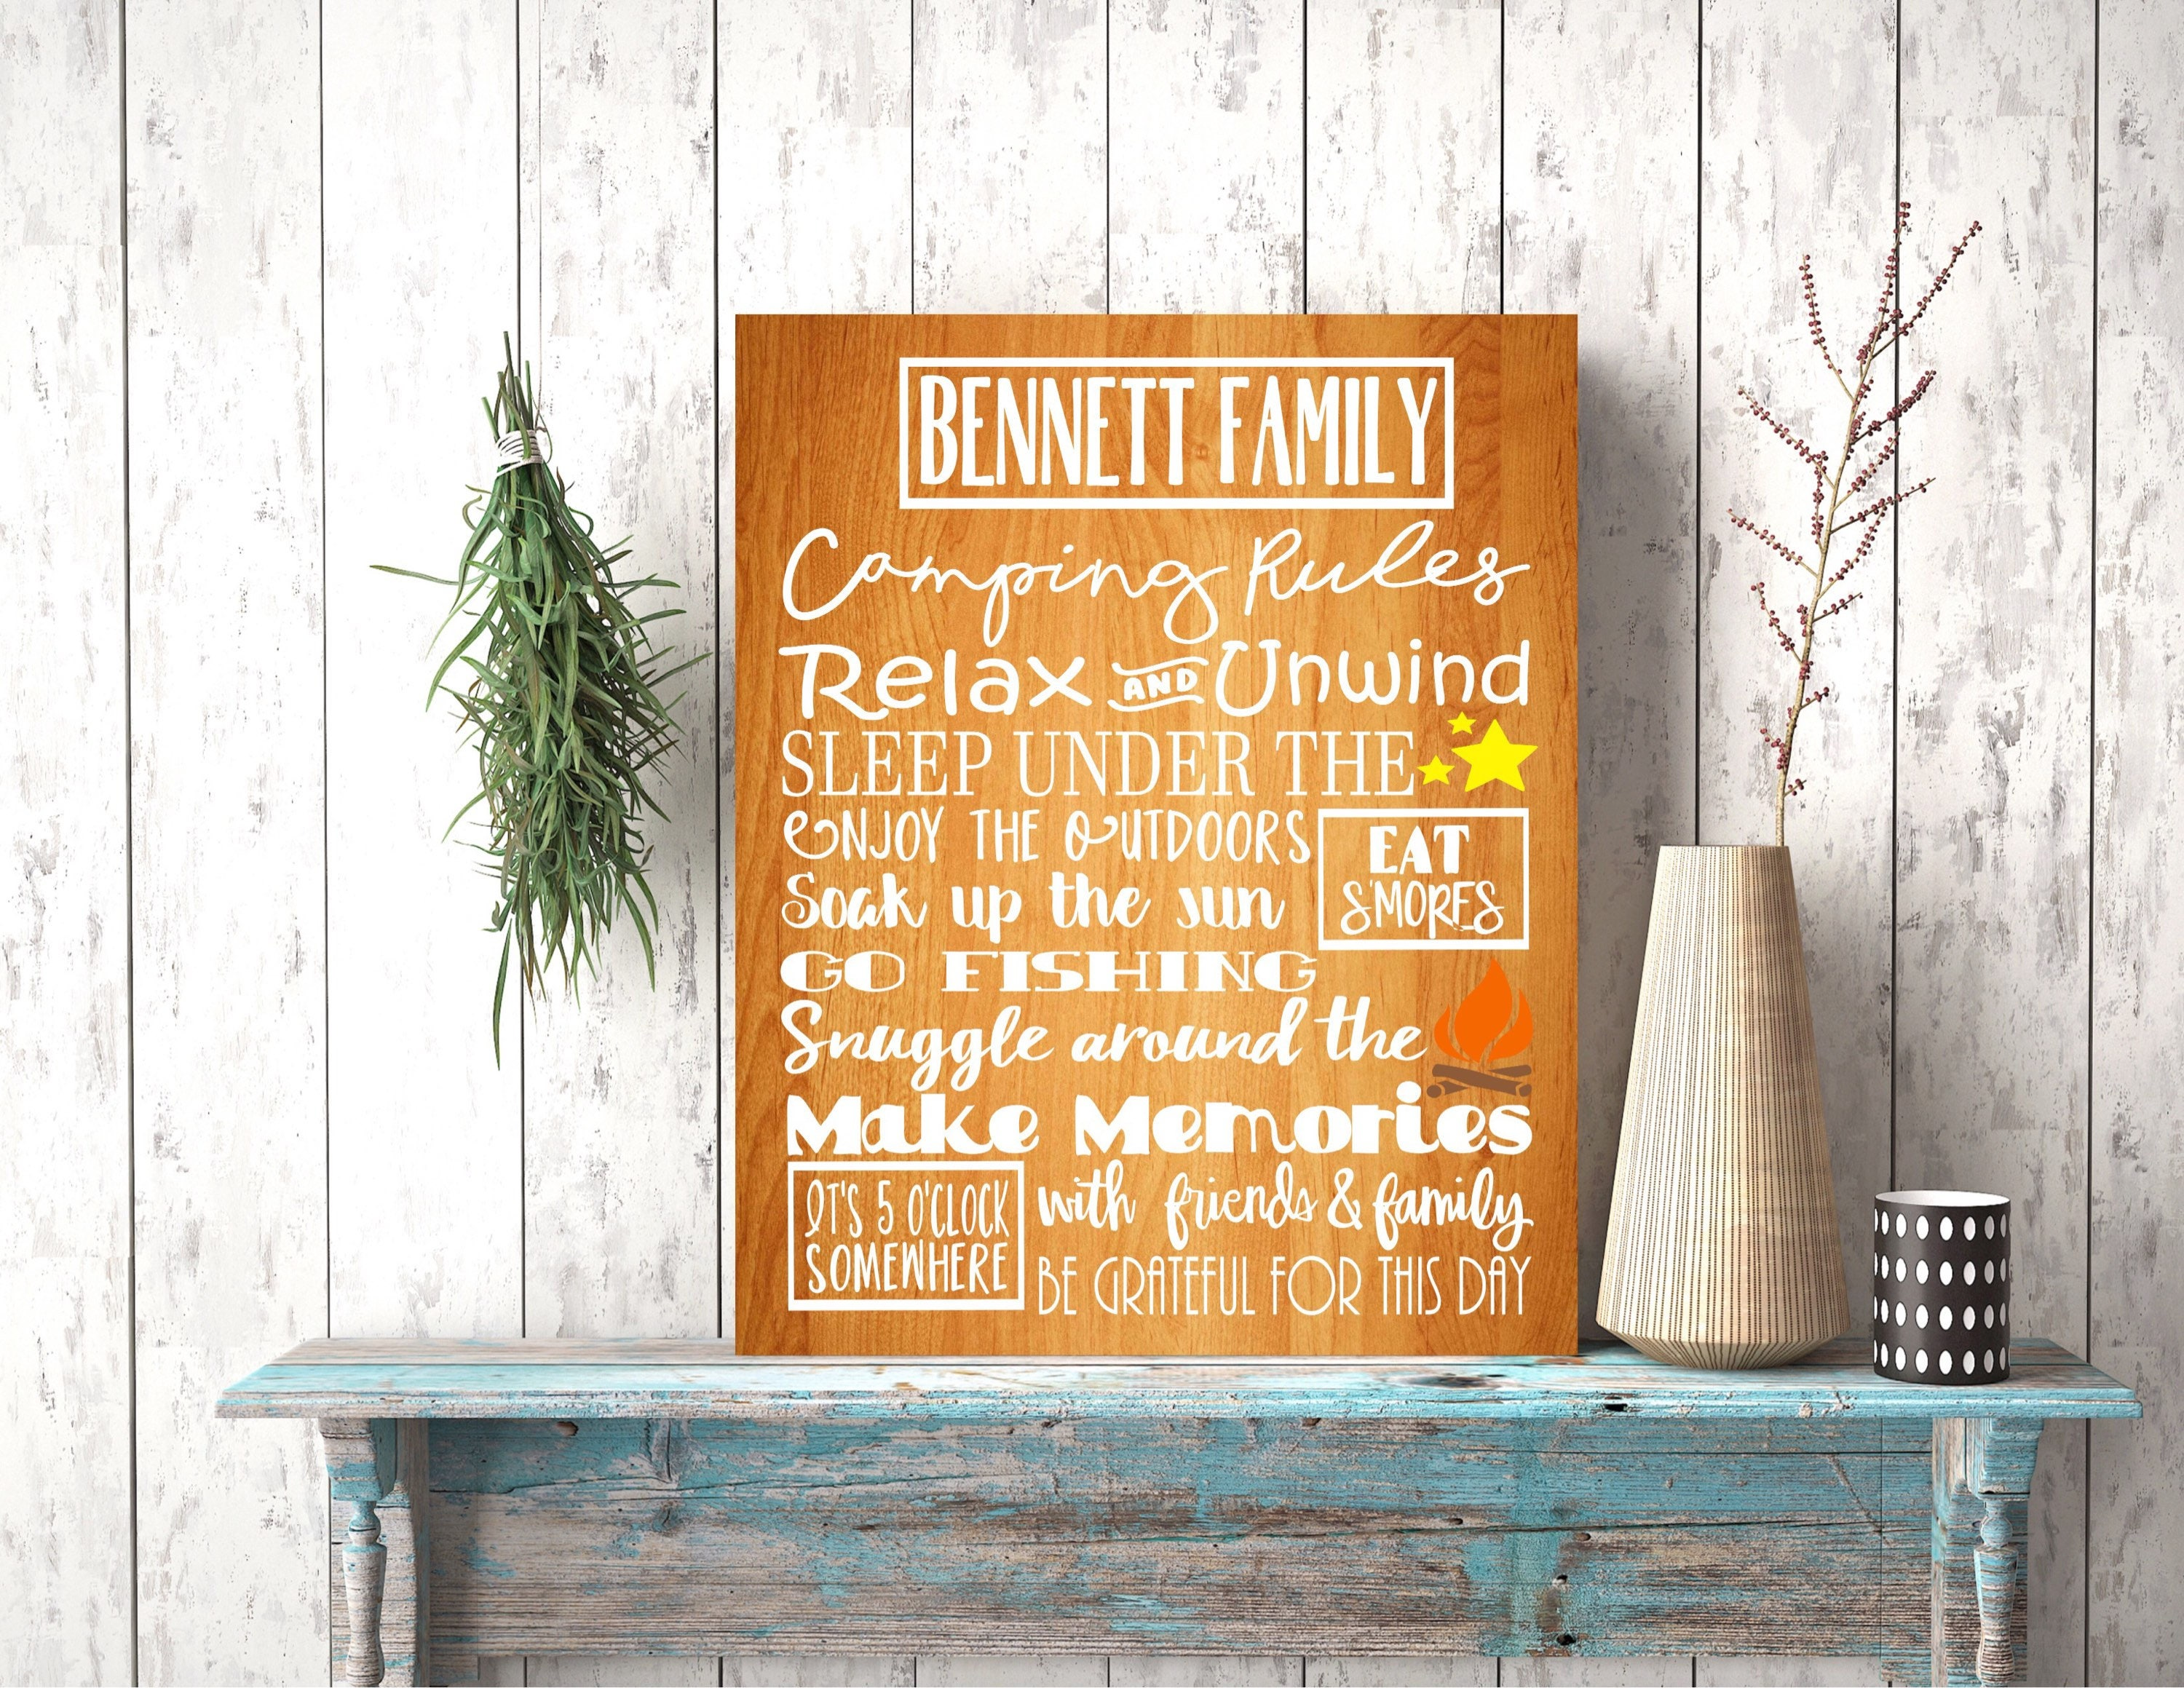 CAMPING RULES RUSTIC Wood Glamping Outdoor Decor Sign